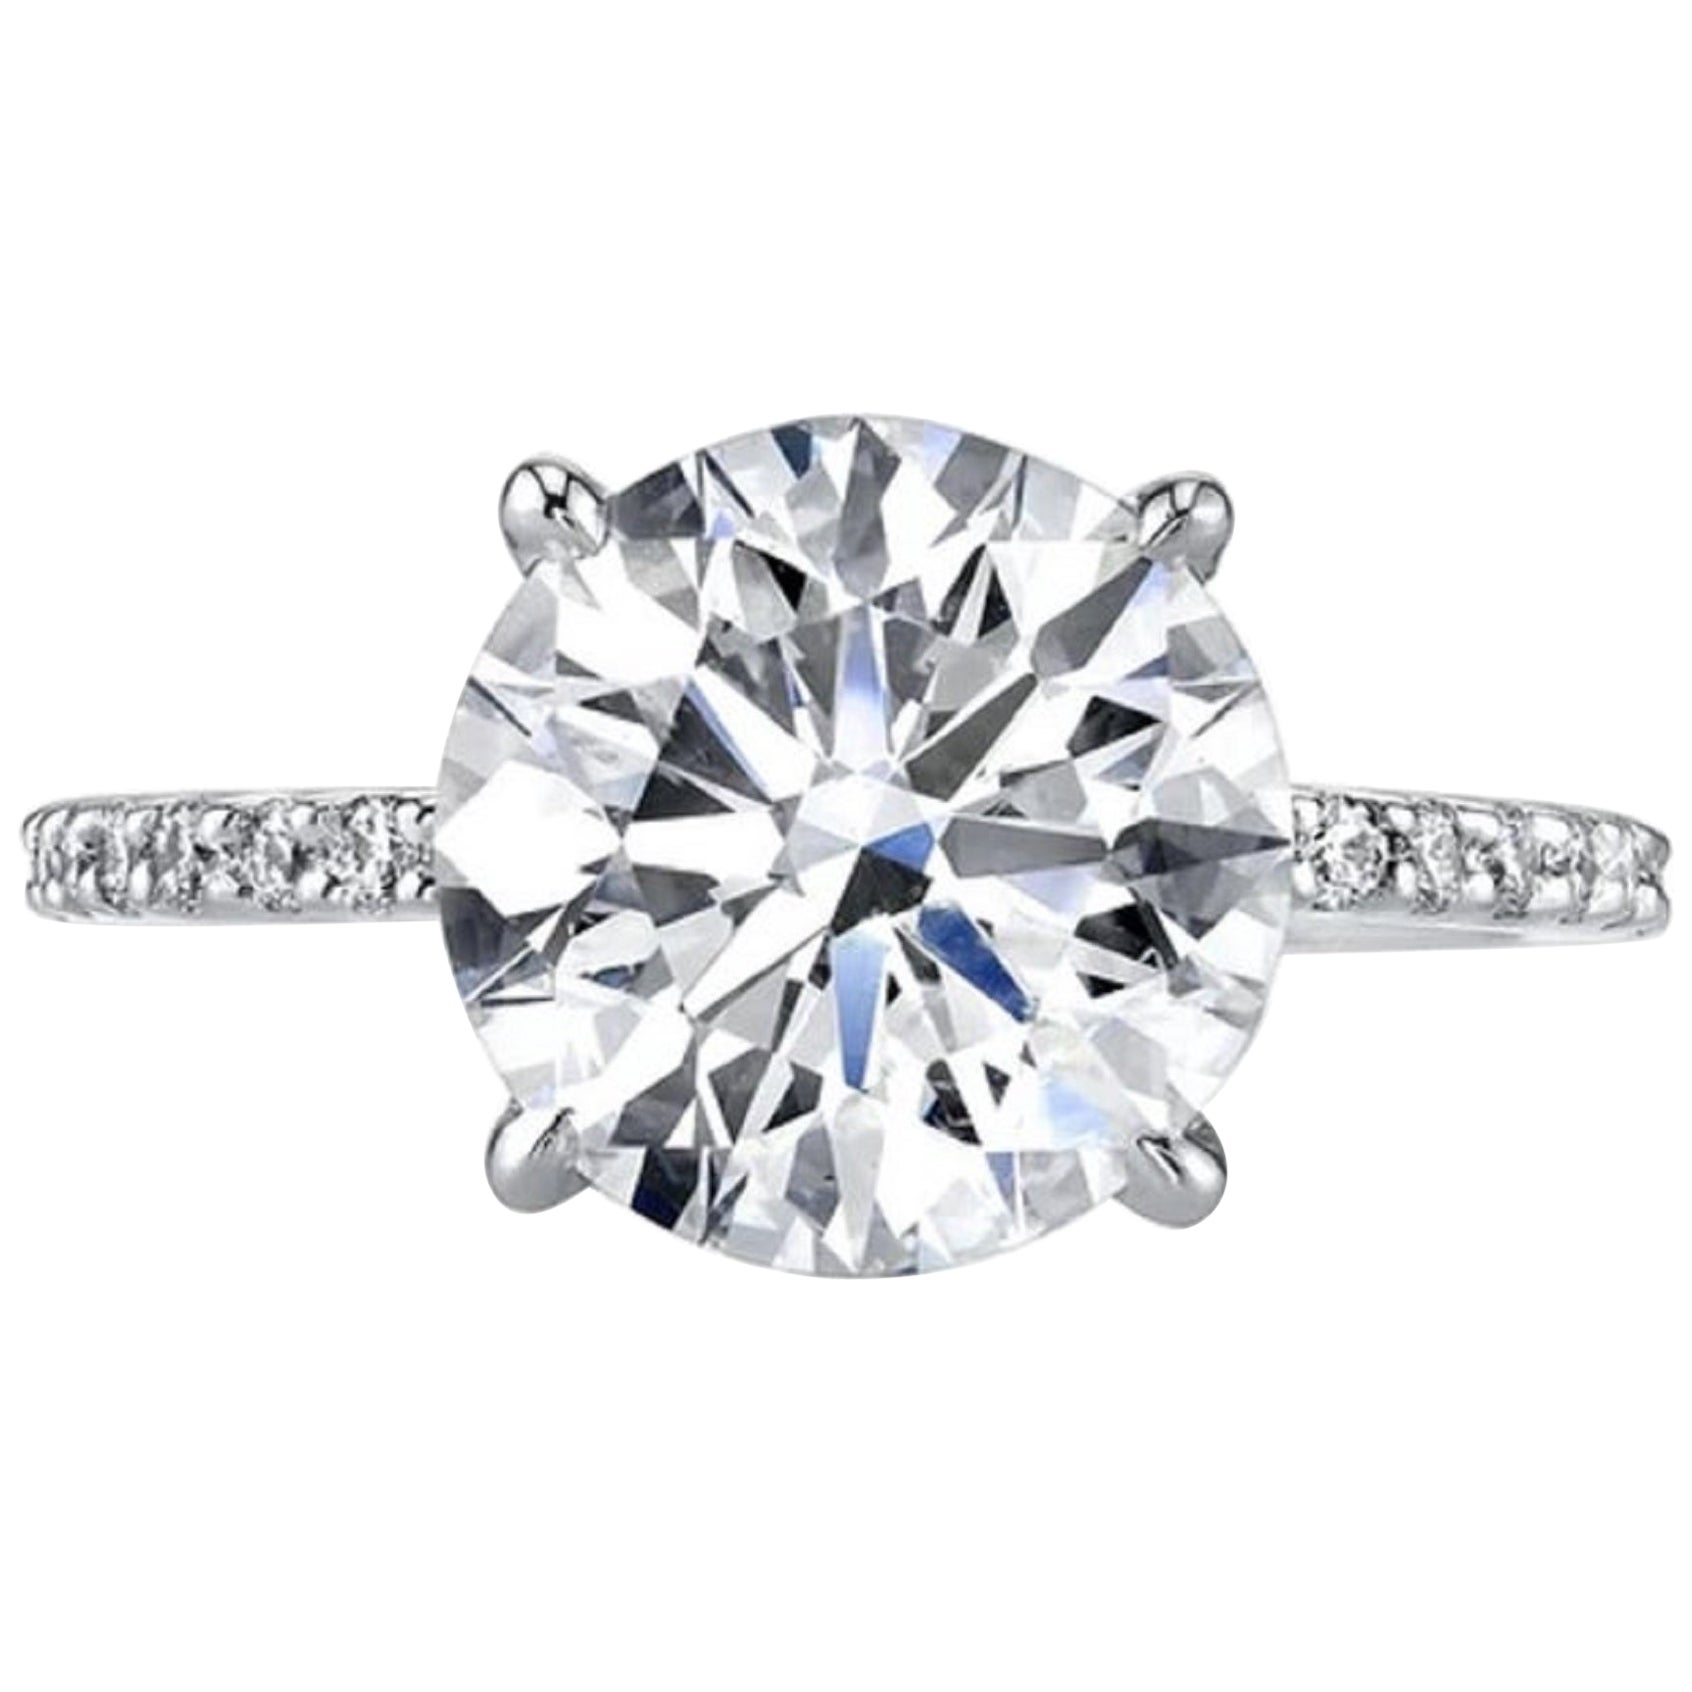 GIA Certified 4.50 Carat Round Brilliant Cut Engagement Solitaire Ring G Color